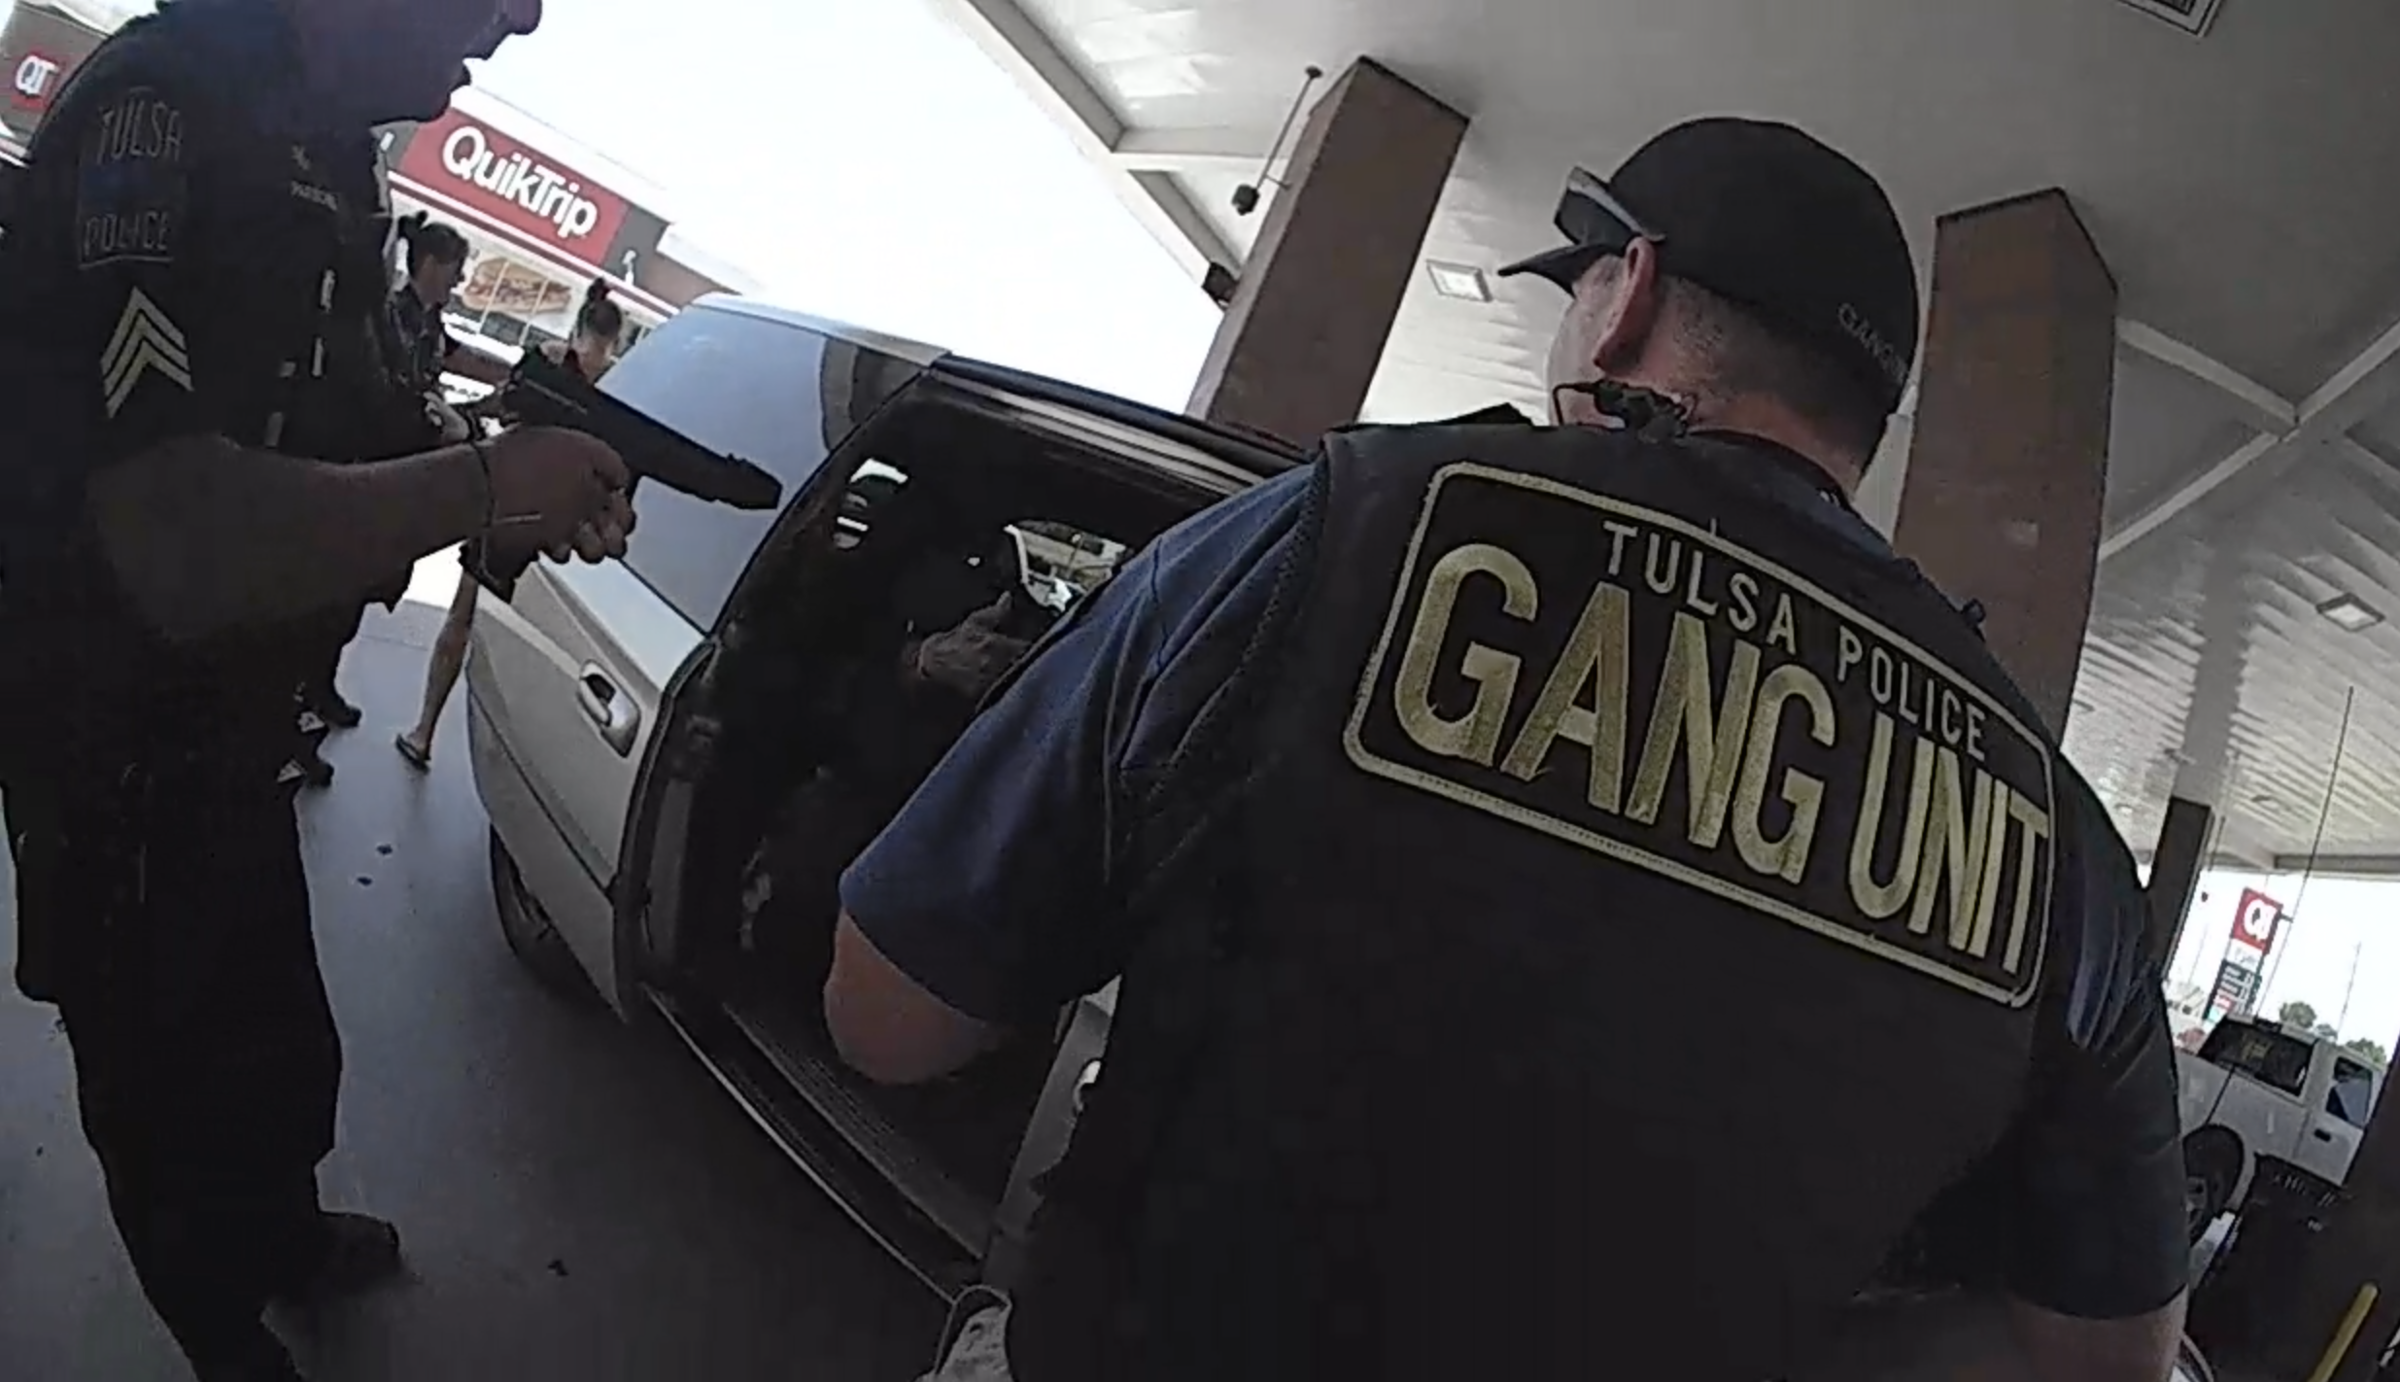 Tulsa Police Release Body Cam Footage of July 3 QuikTrip Shooting